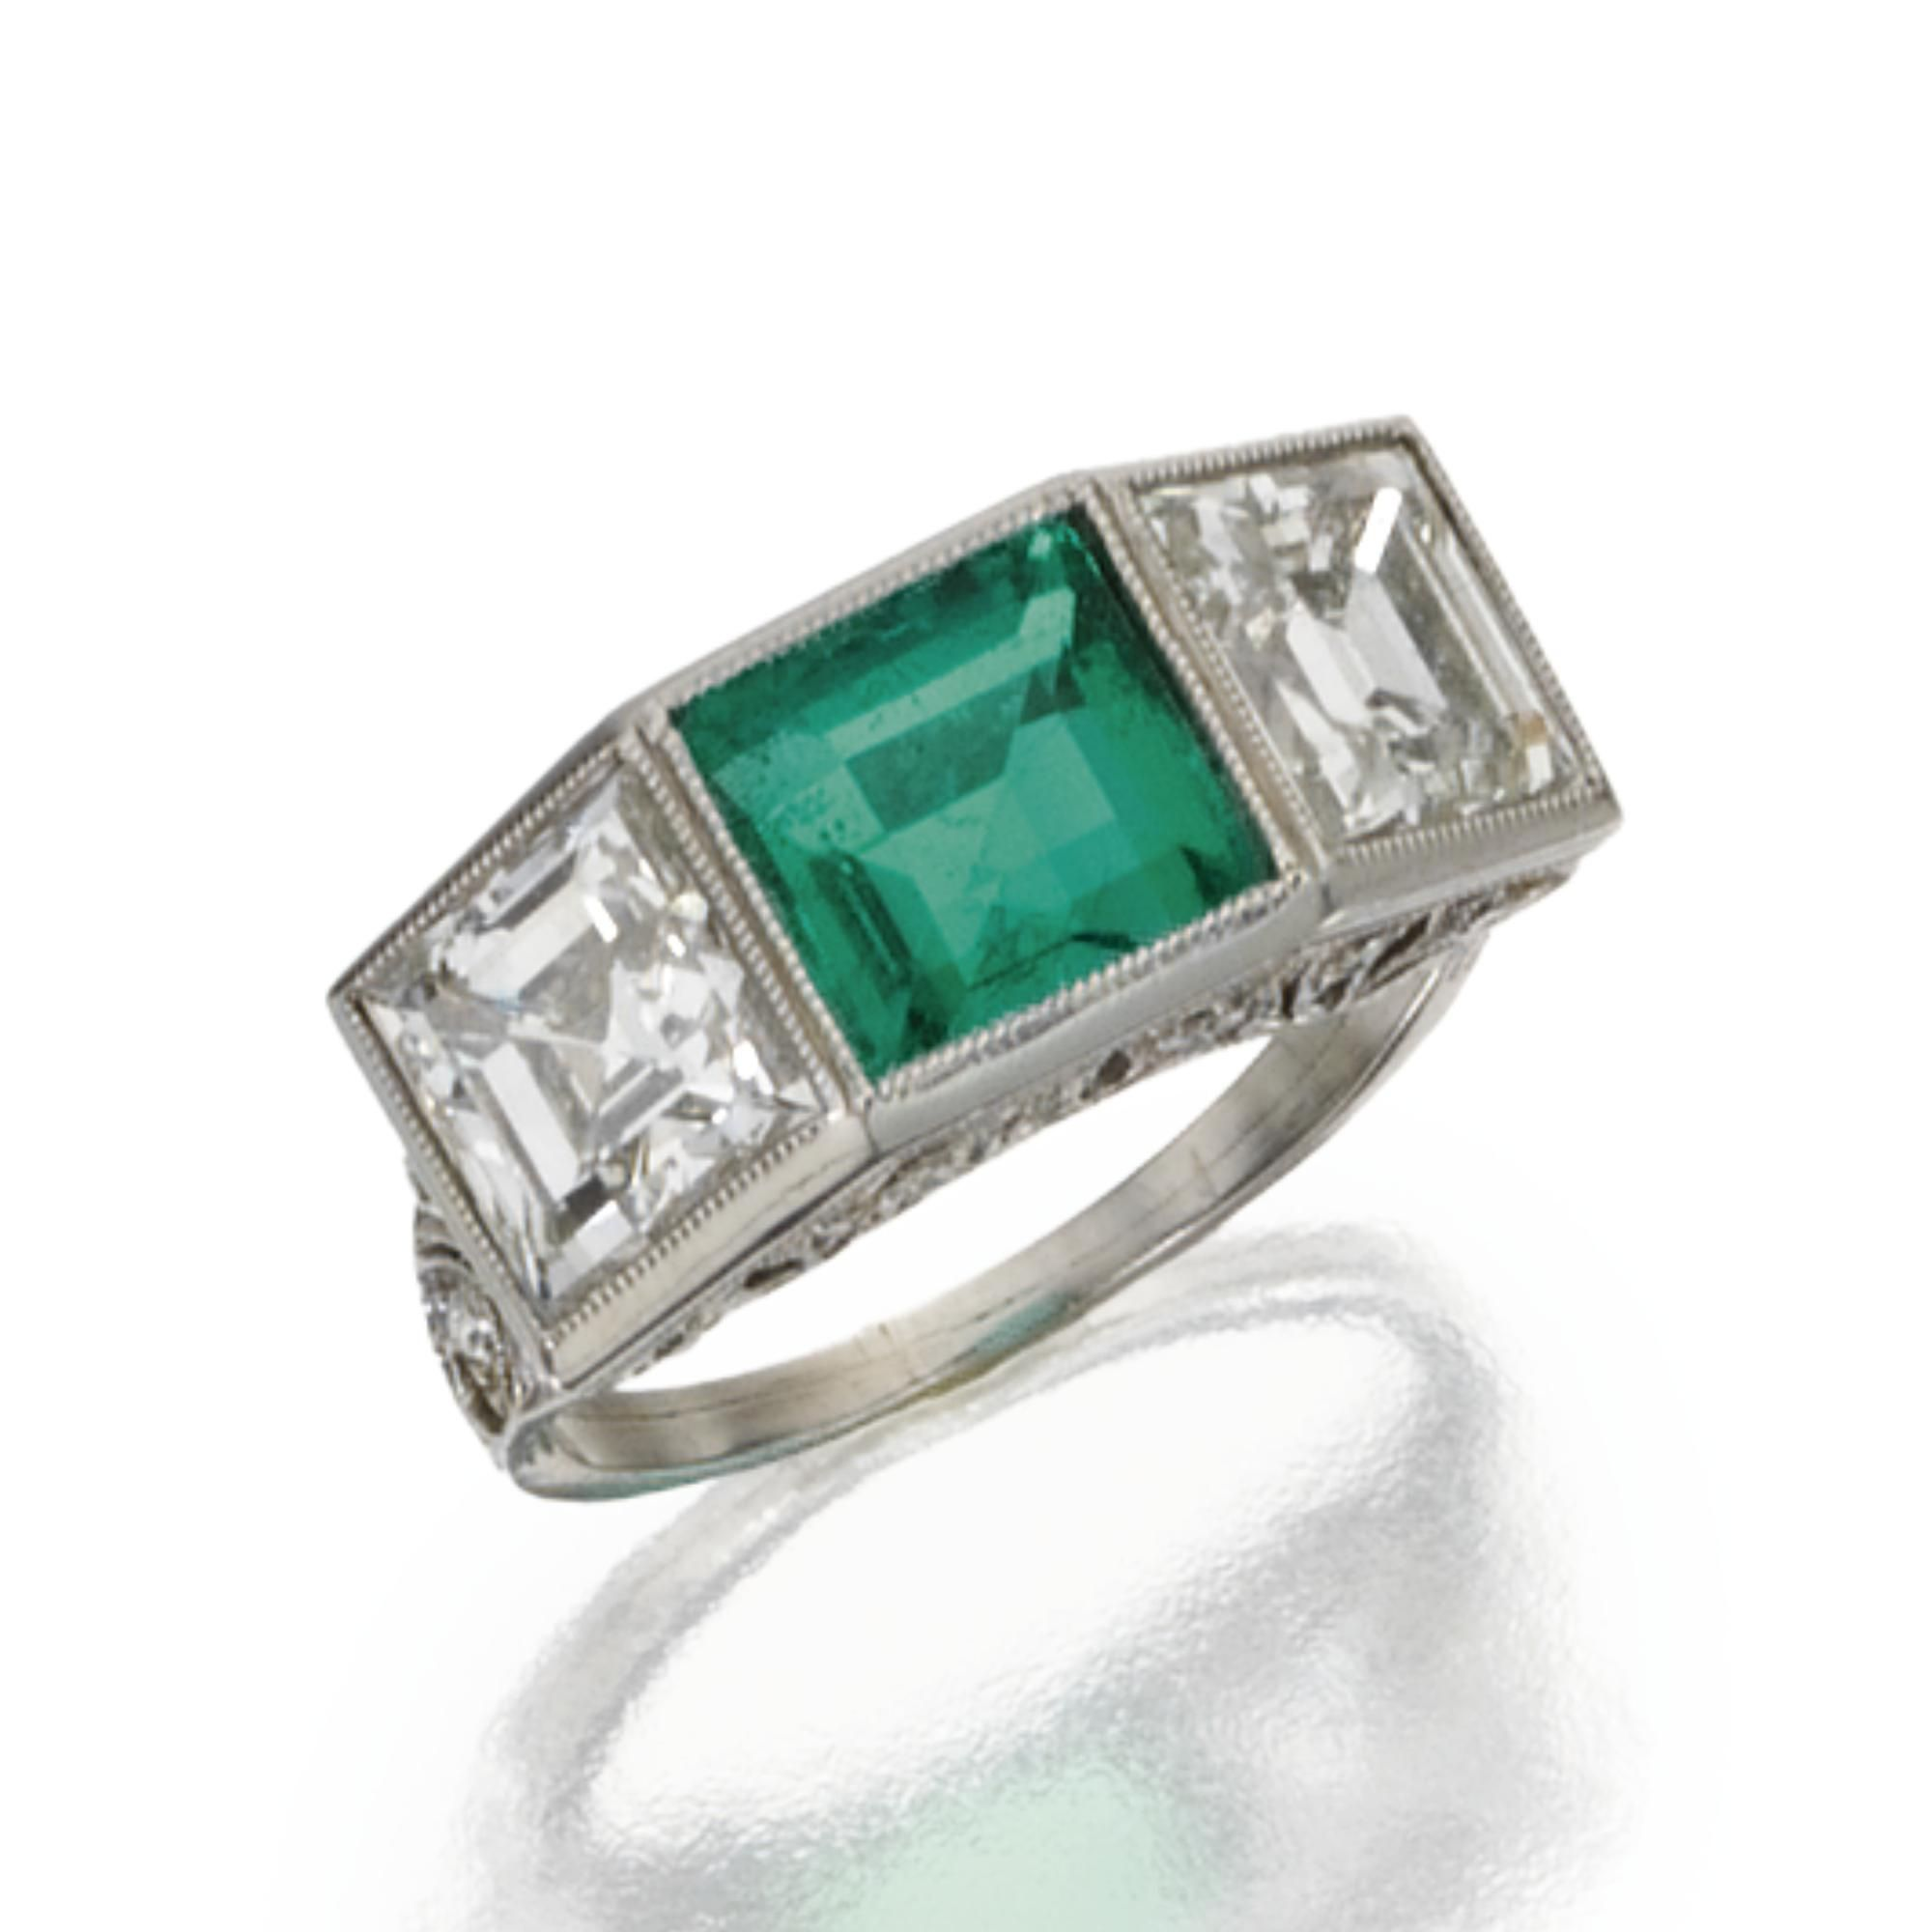 ring portfolio emerald skylight sapphire jewelers golden sunflower boston view larger engagement items image jewelry custom